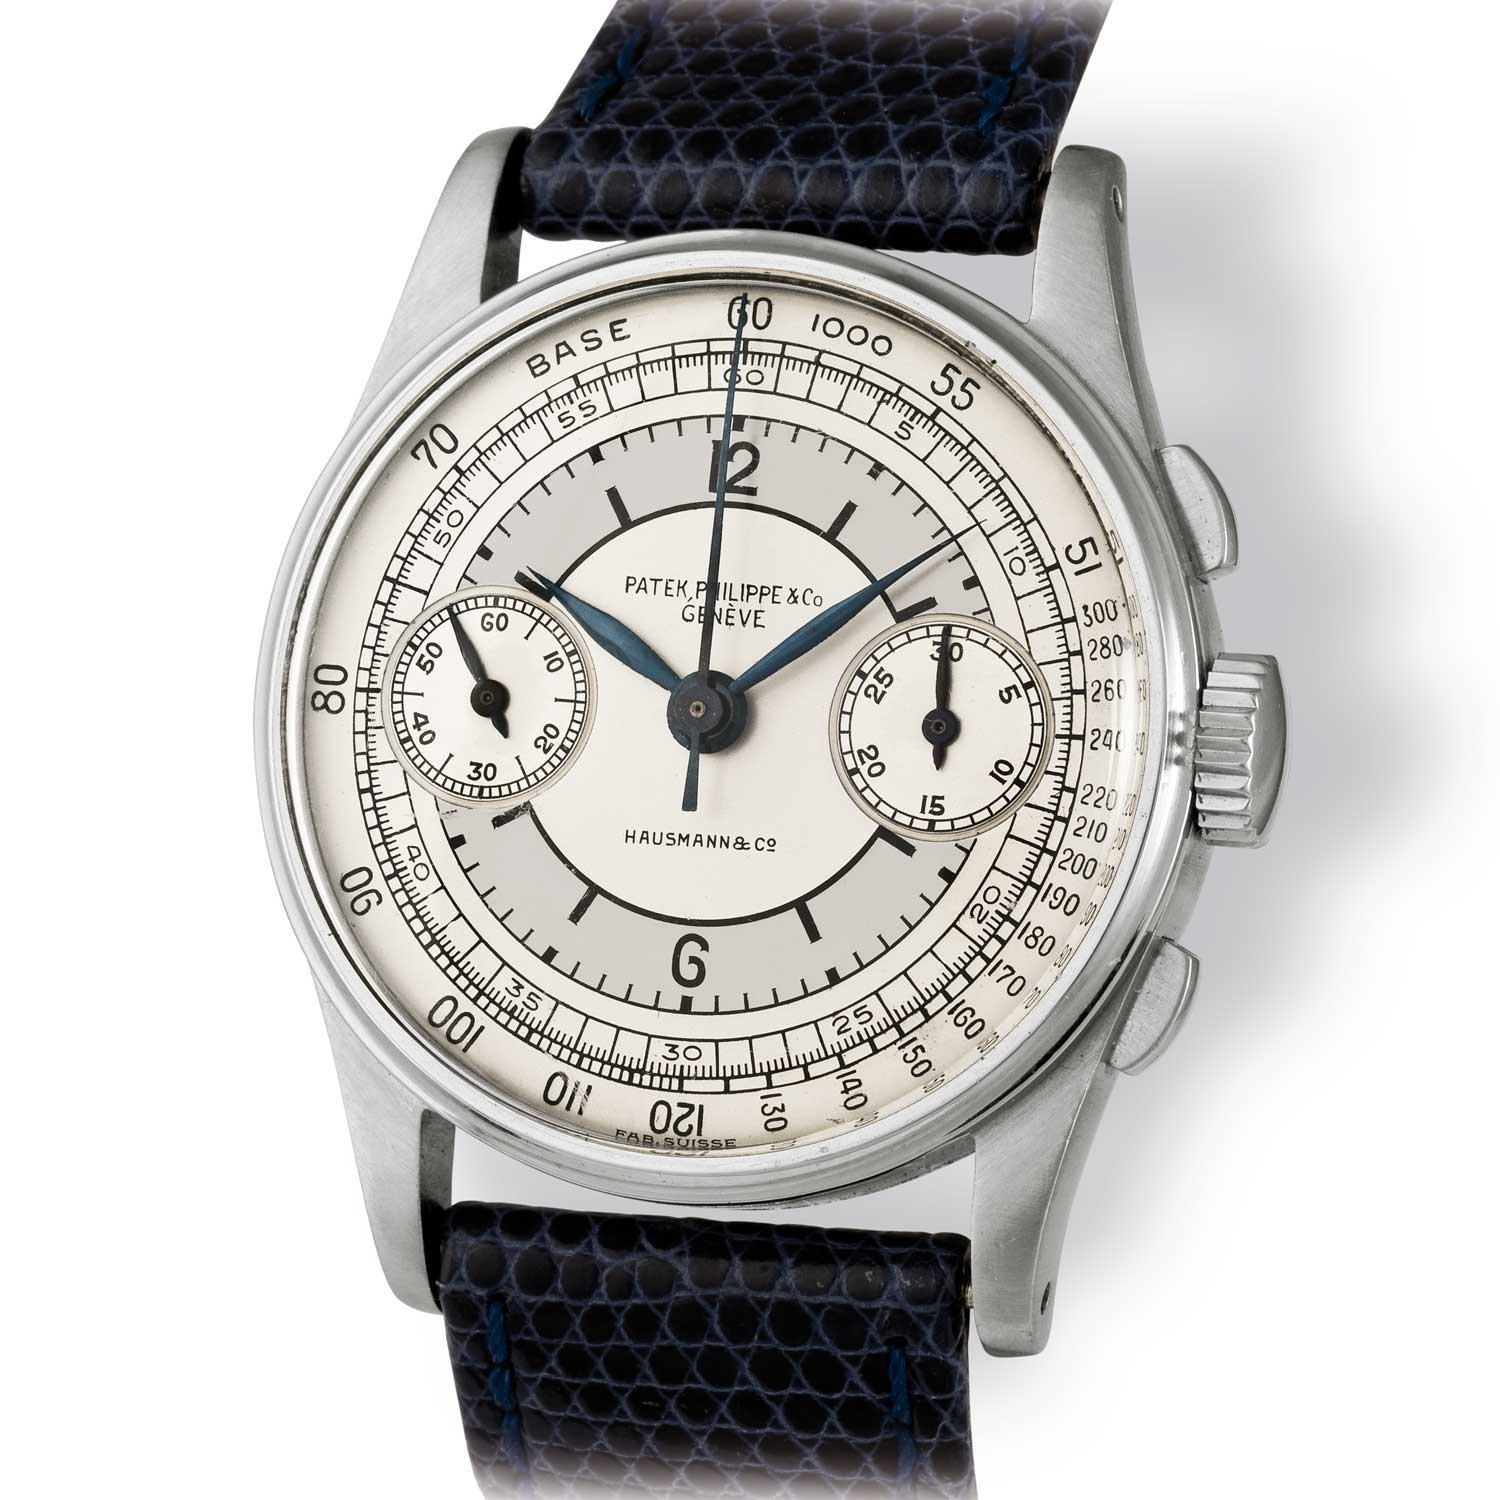 "A rare ref. 130 with sector dial with just a tachymeter and signed ""Hausmann & Co."""